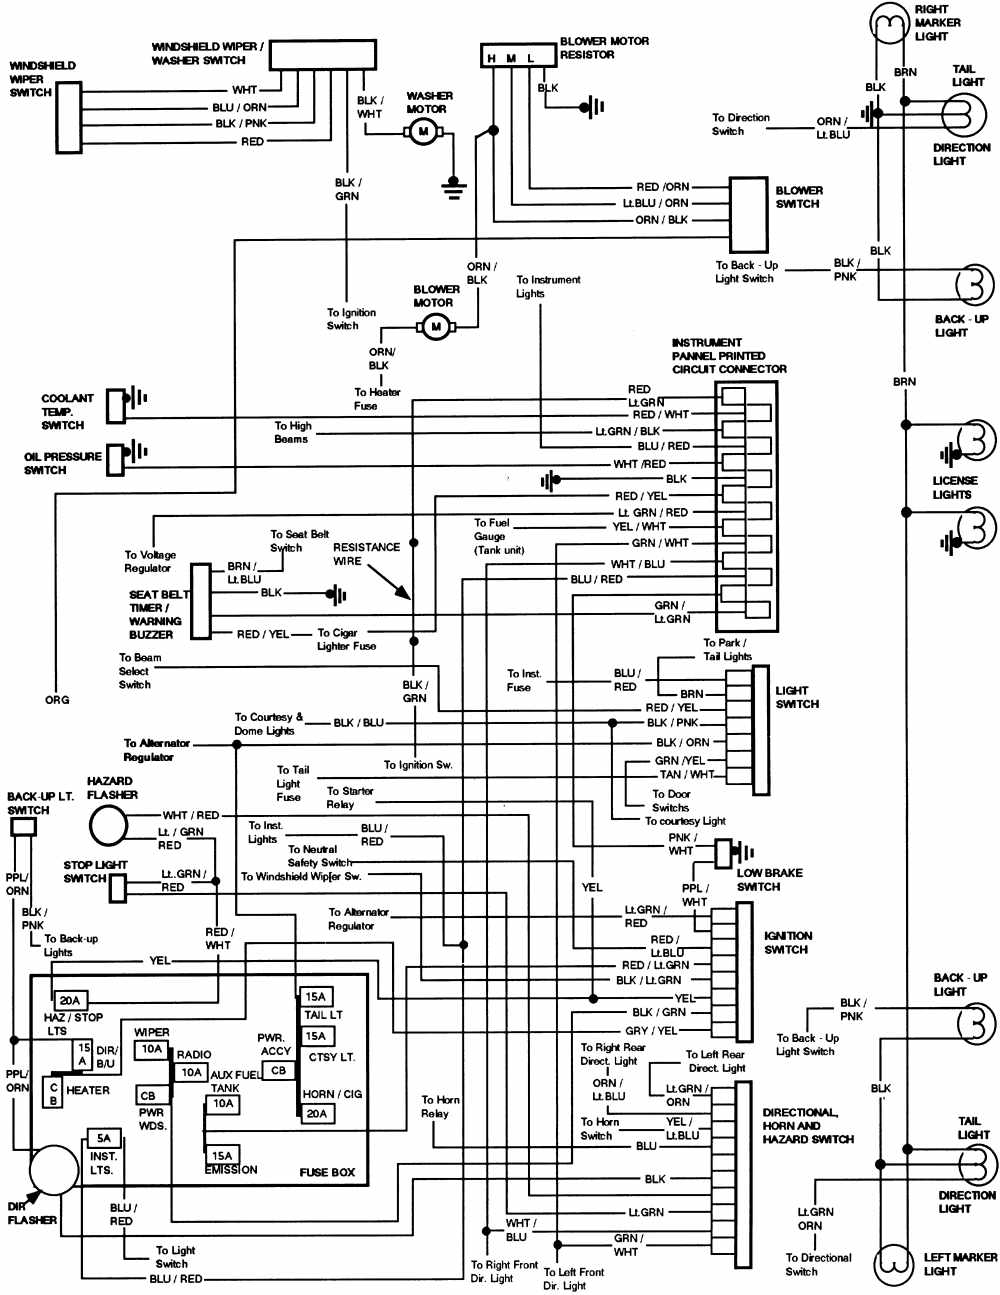 1984 f100 wiring diagram example electrical wiring diagram u2022 rh huntervalleyhotels co